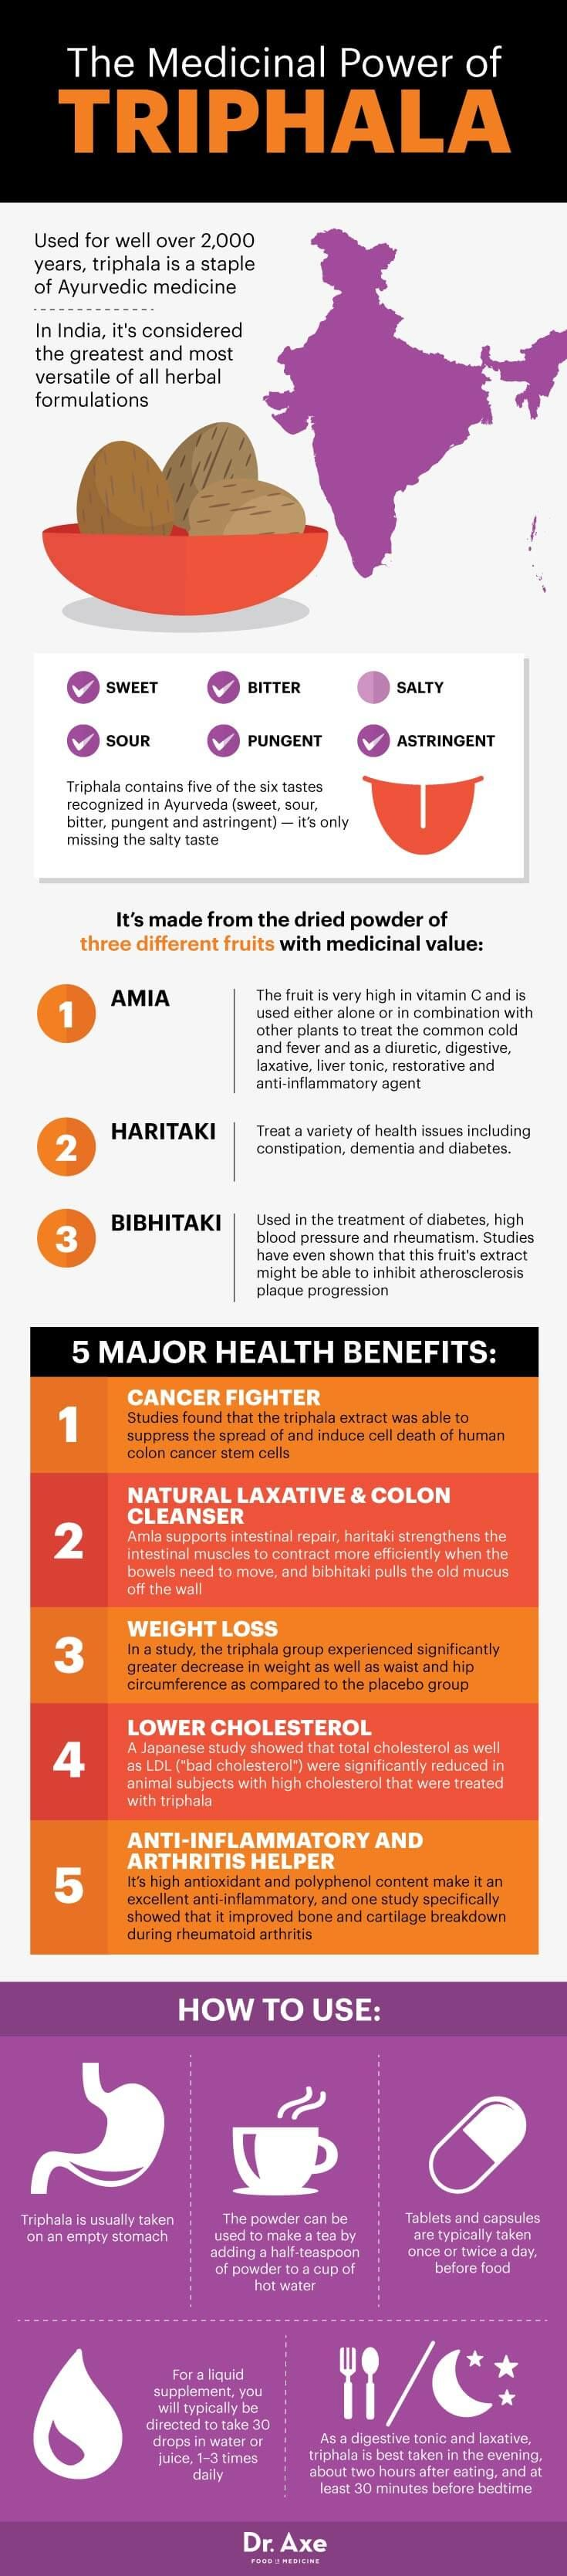 Triphala guide - Dr. Axe http://www.draxe.com #health #holistic #natural